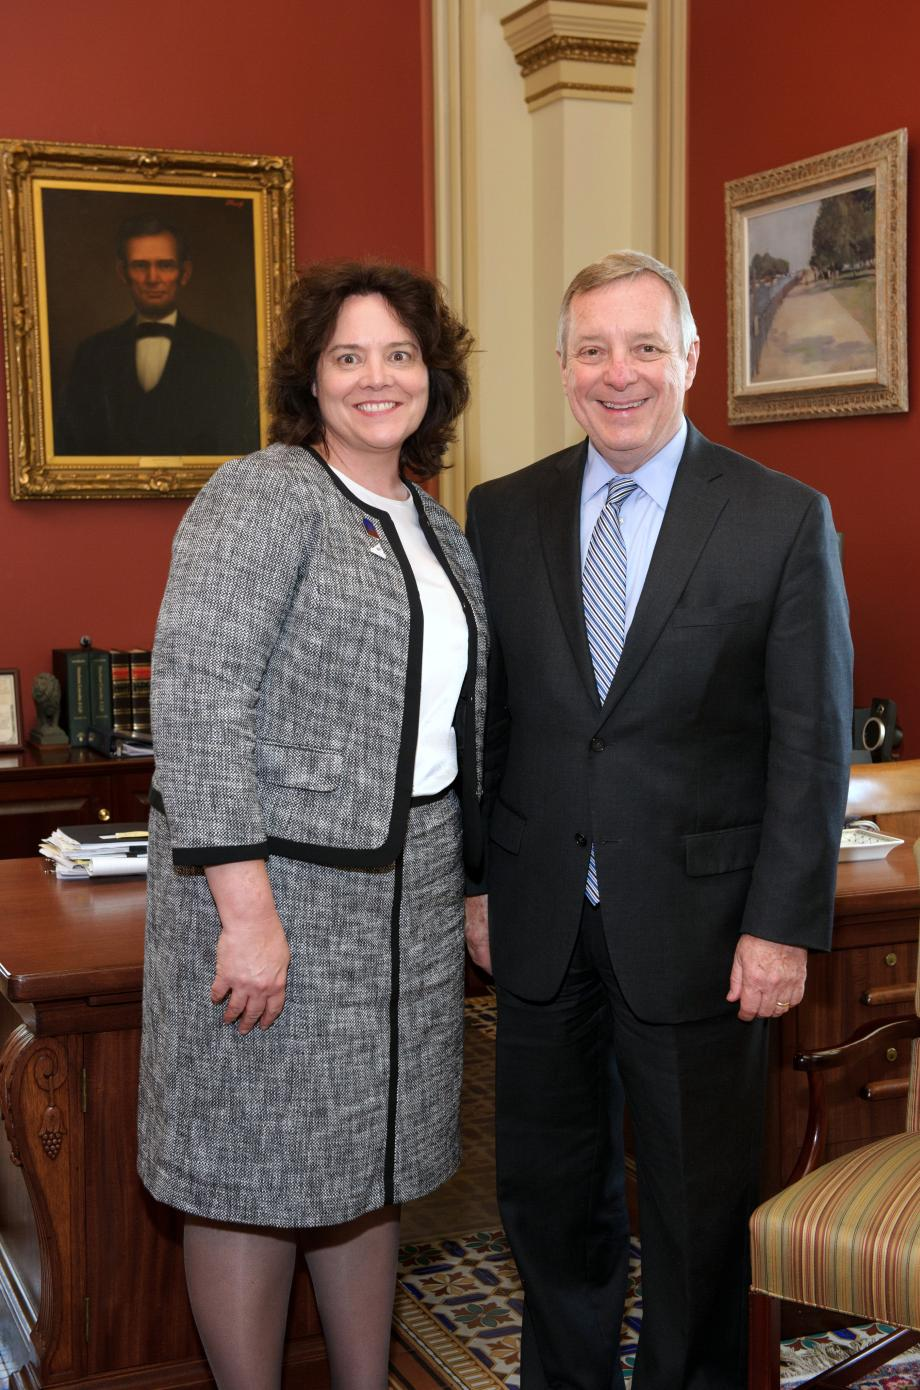 U.S. Senator Dick Durbin met with 2014 ACTFL National Language Teacher of the Year Linda Egnatz. Egnatz teacehs at Lincoln-Way North High School in Frankfort, Illinois.